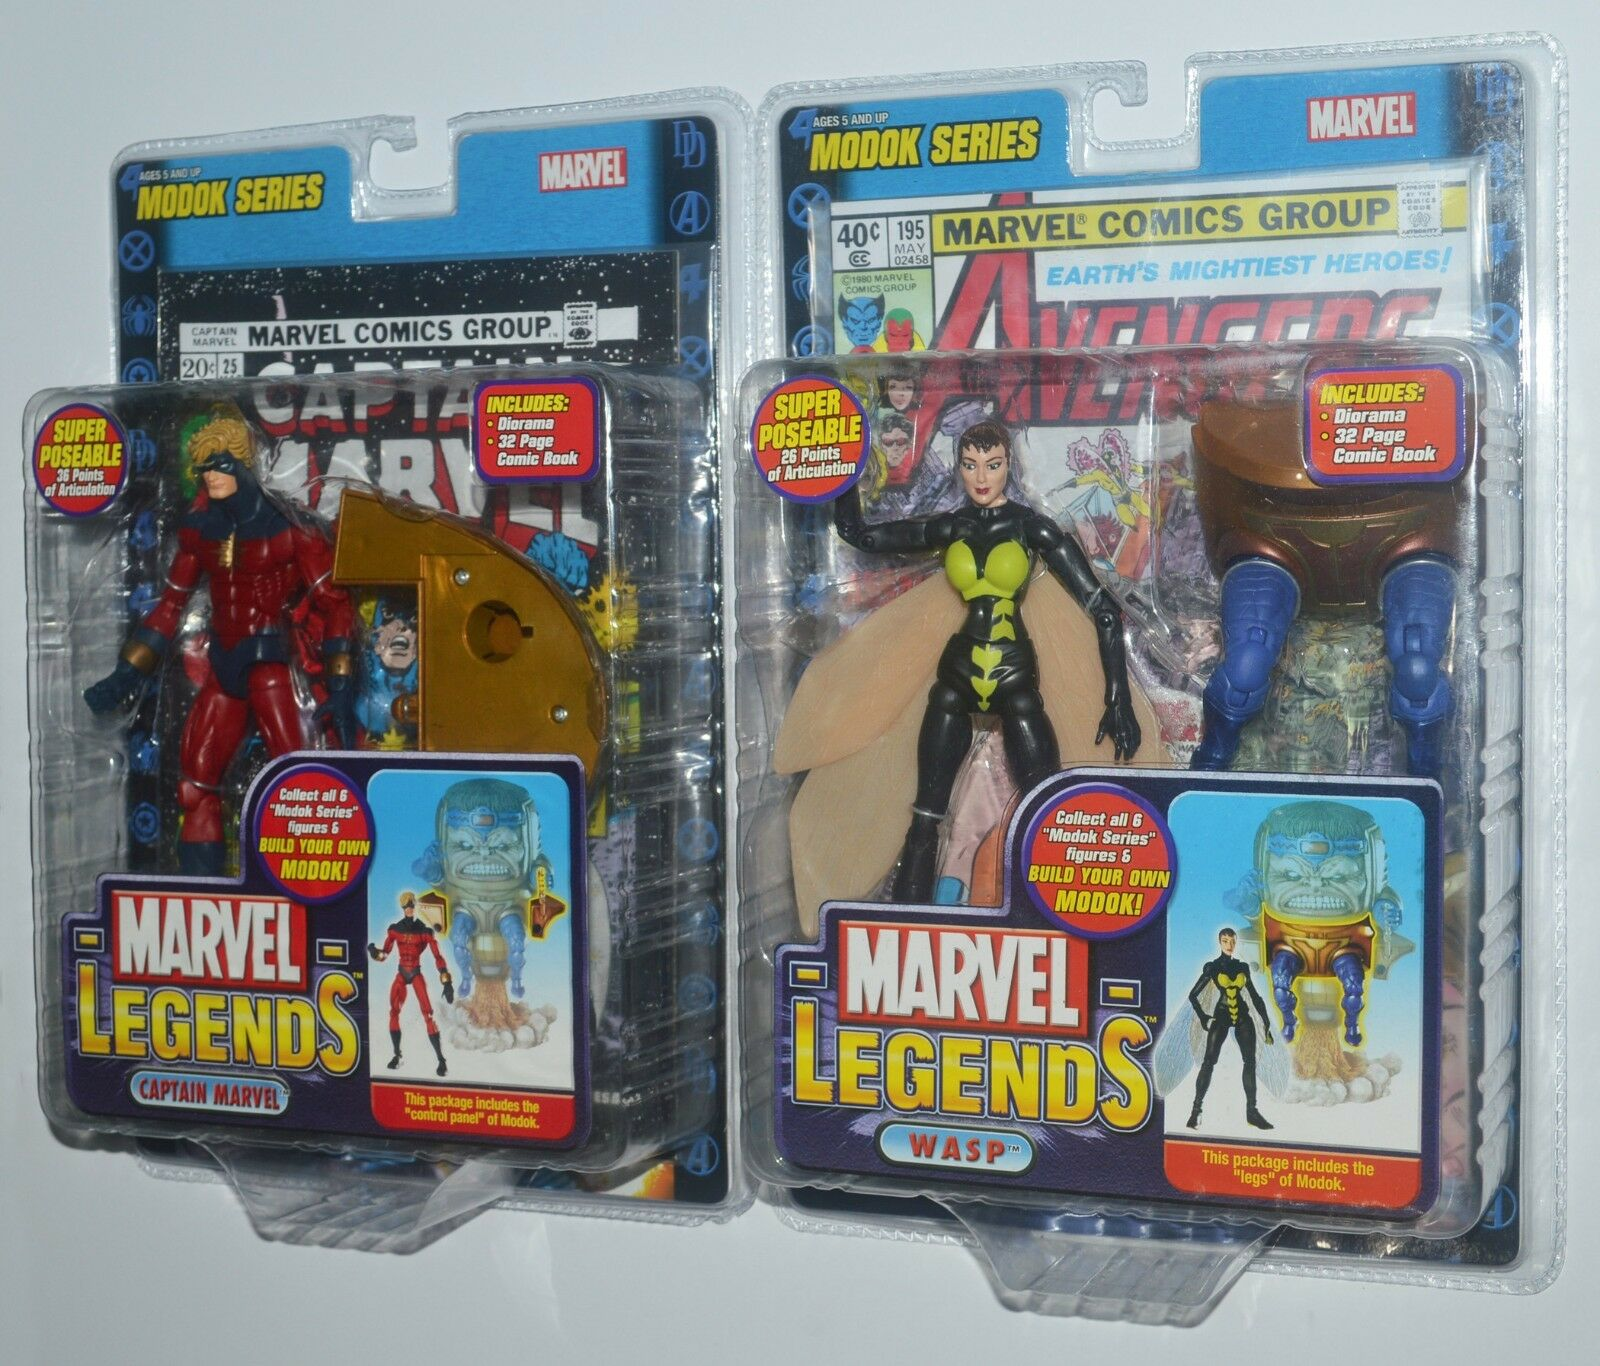 CAPTAIN MARVEL & WASP Marvel Legends Modok Series Action Figures MIP